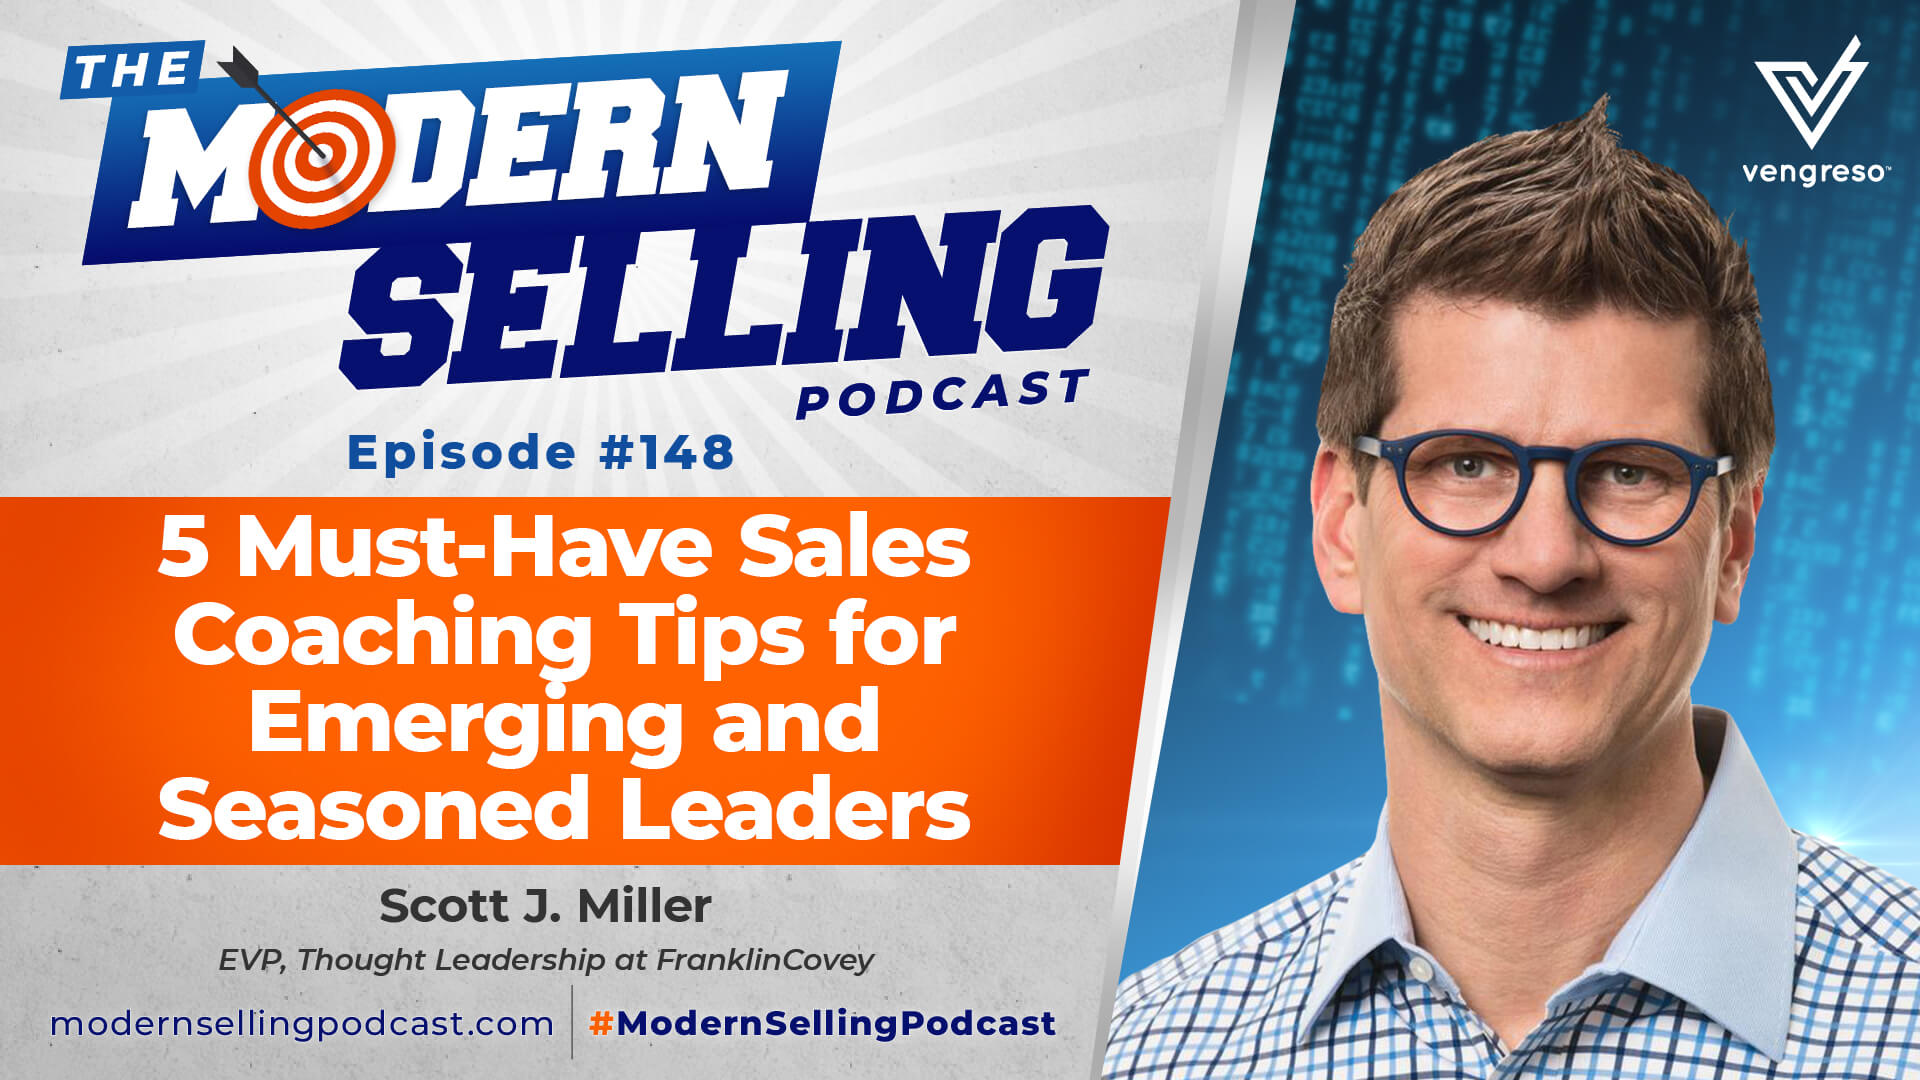 5 Must-Have Sales Coaching Tips for Emerging and Seasoned Leaders